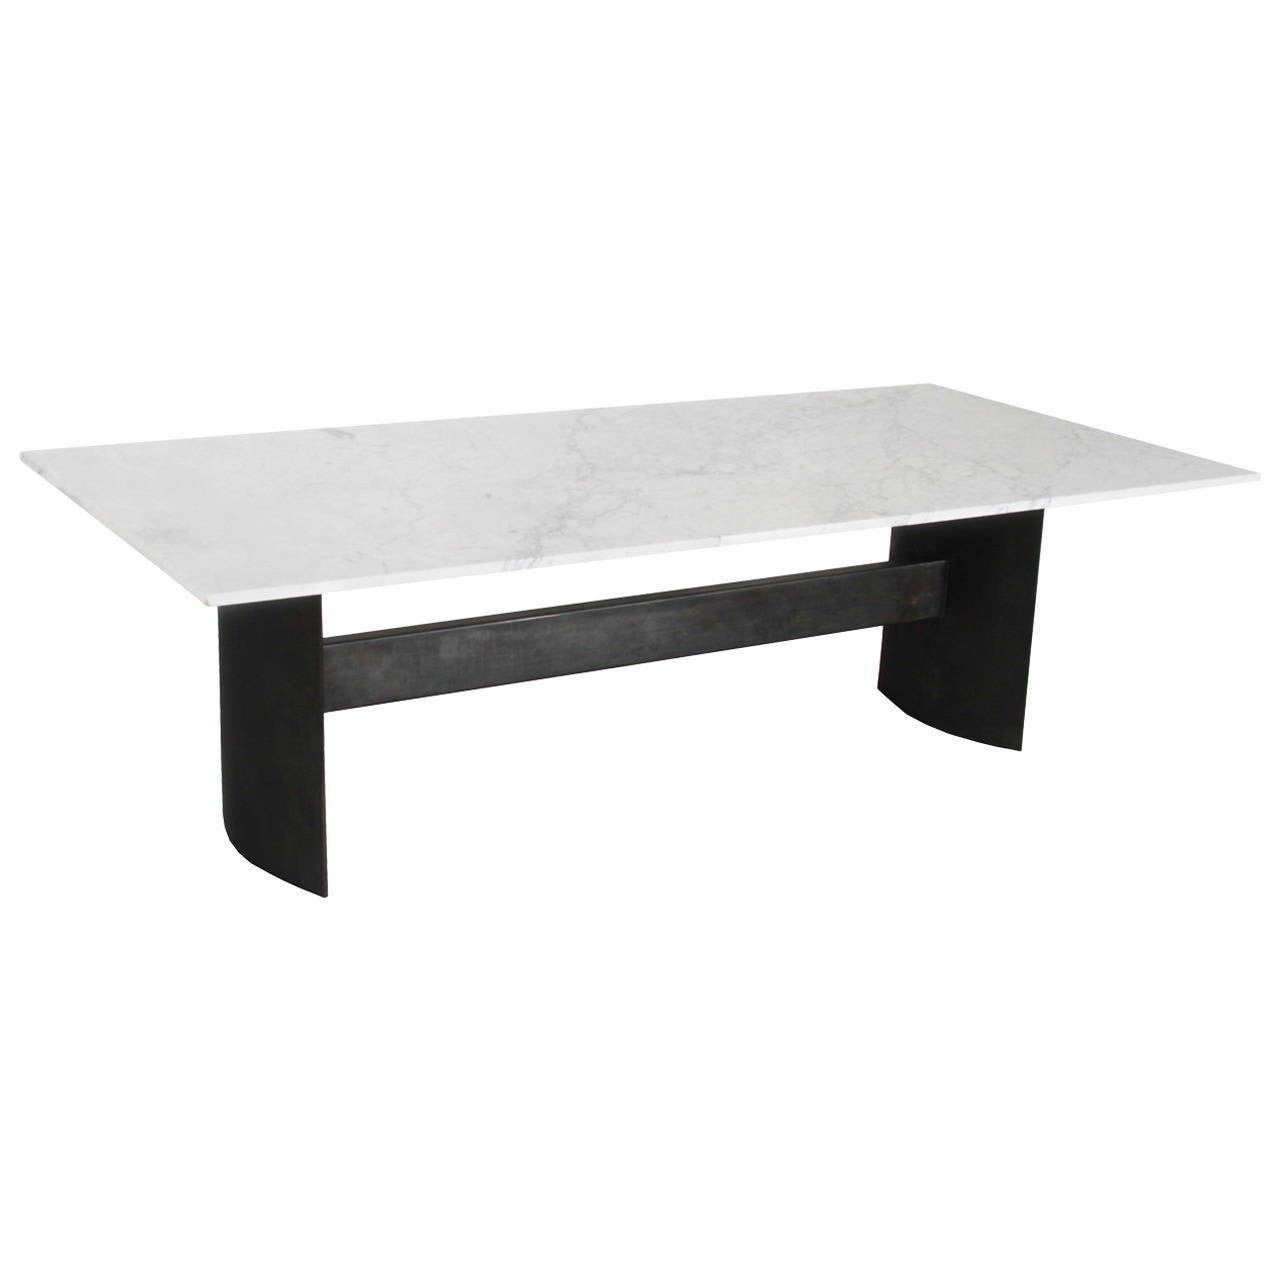 Custom Gunmetal And Marble Dining Table By Thomas Hayes Studio At 1stdibs